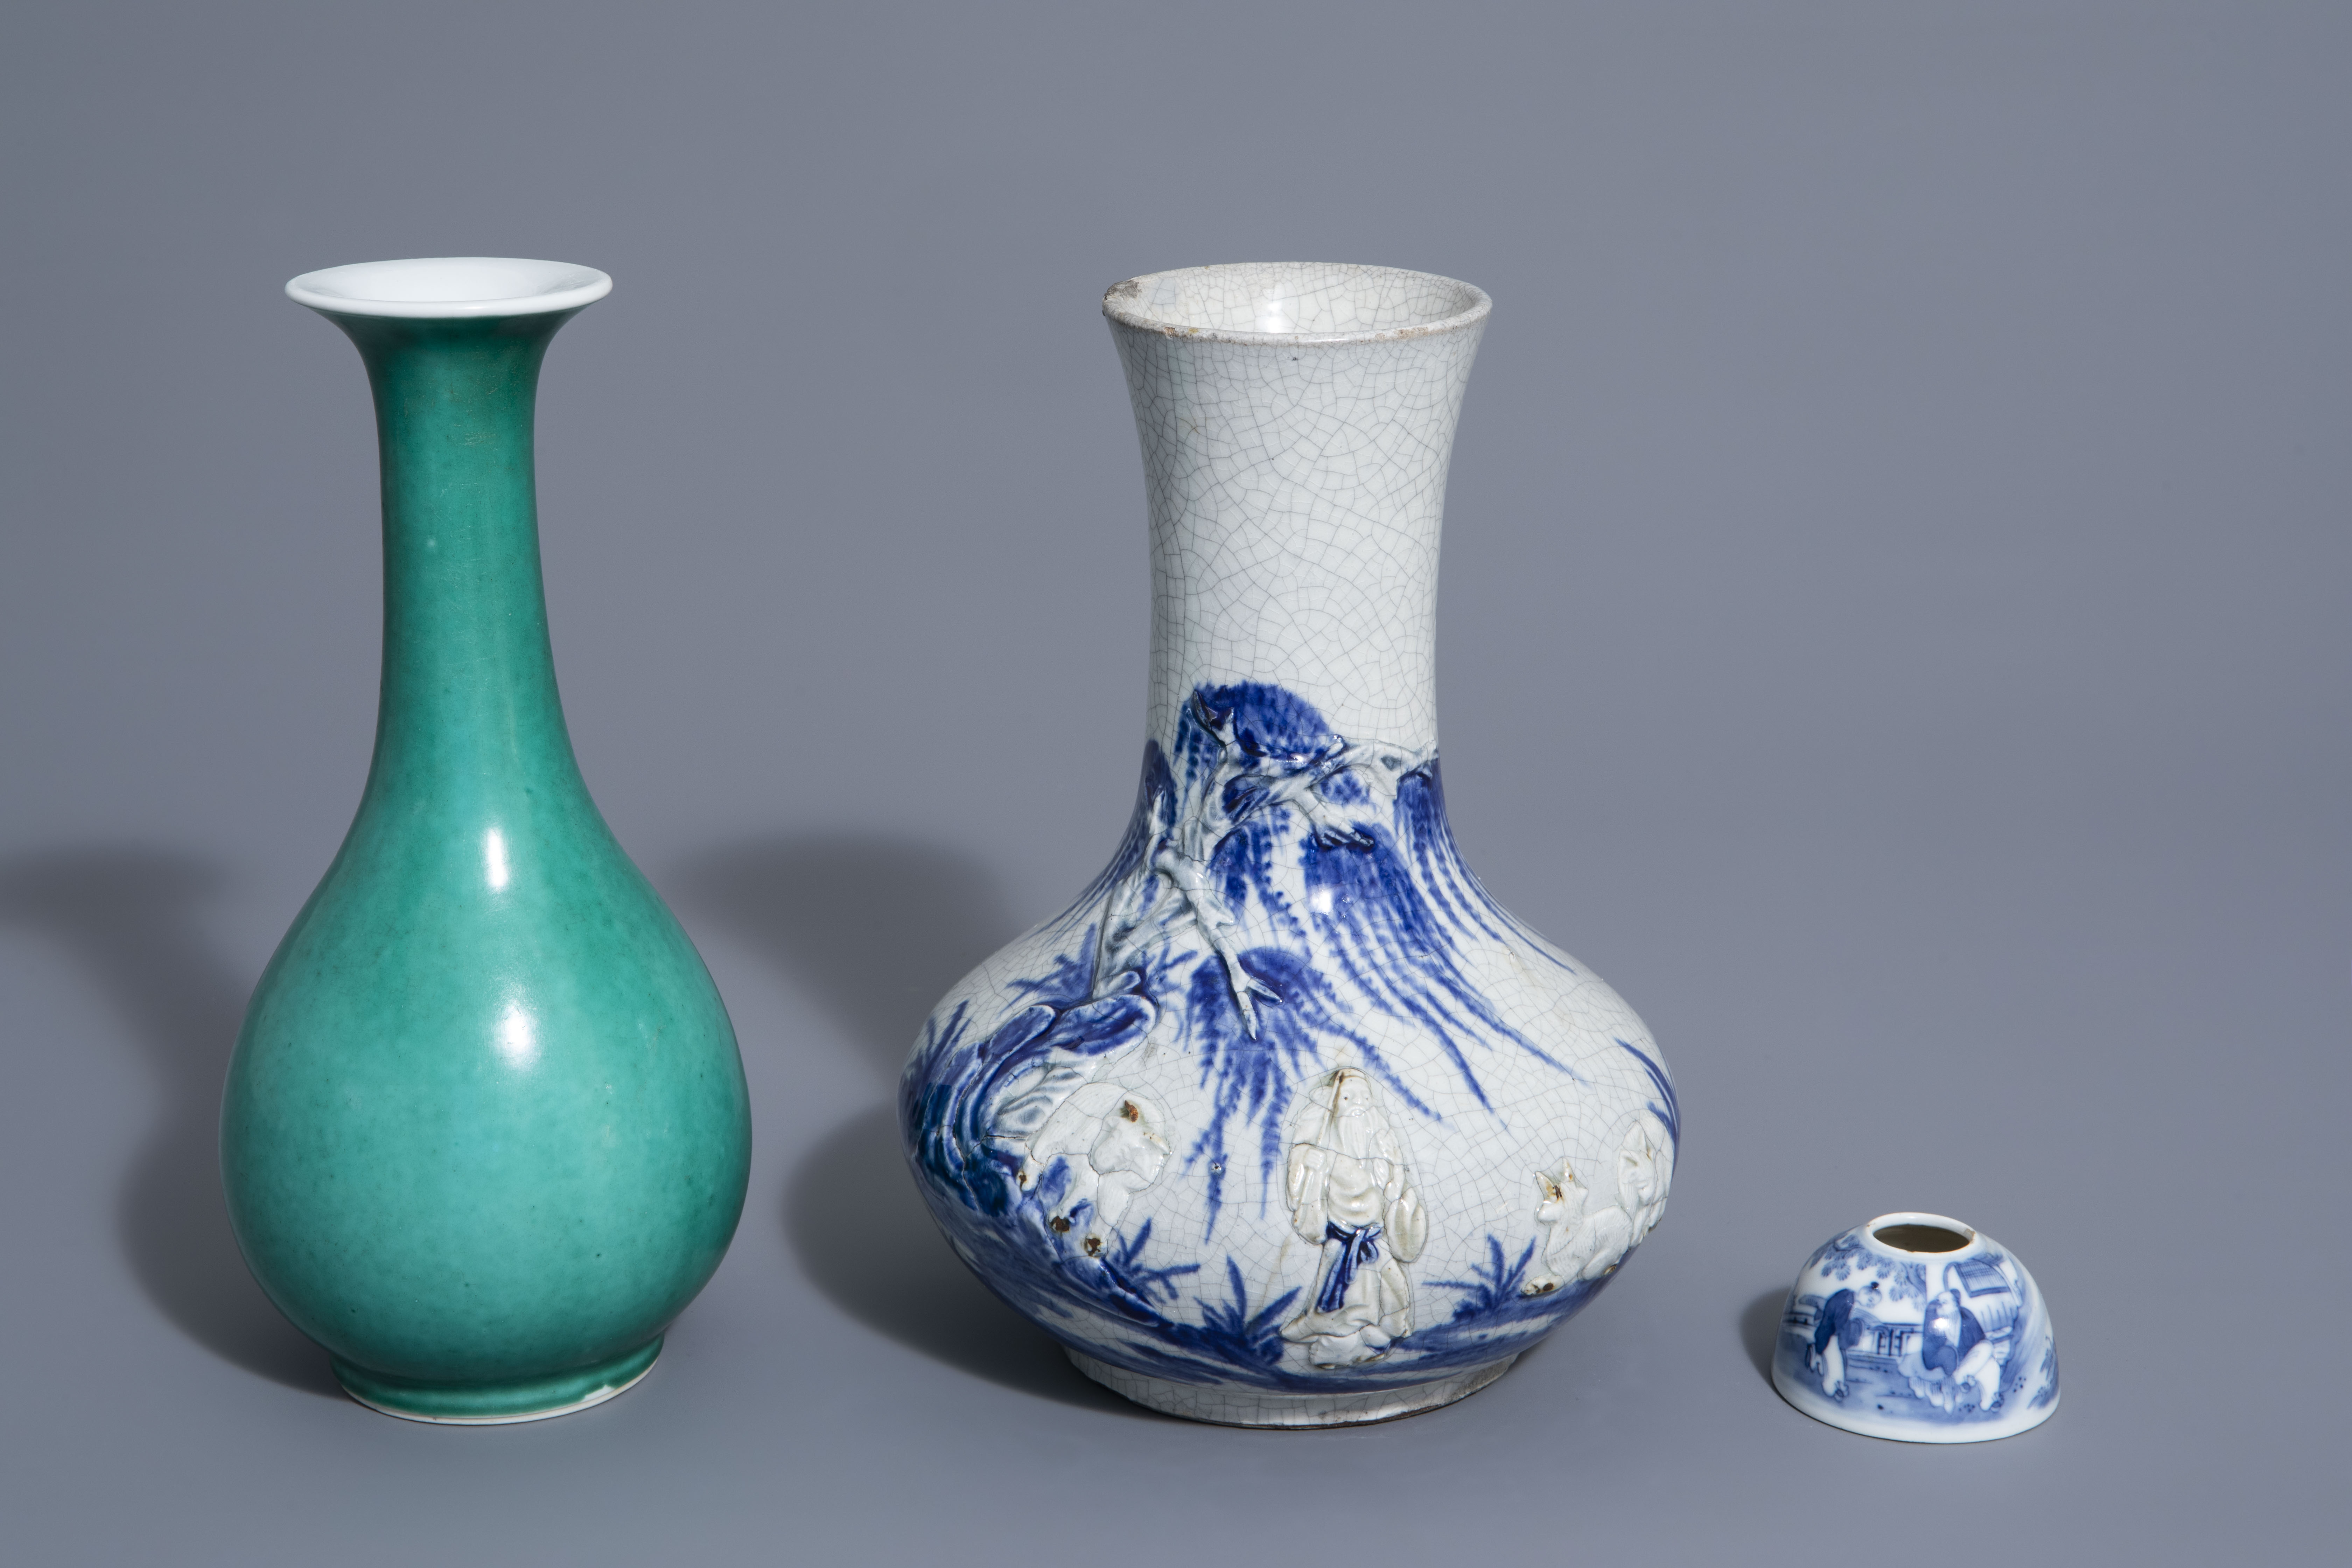 A Chinese blue & white crackle glazed vase, a monochrome green vase and a brushwasher, 19th/20th C.